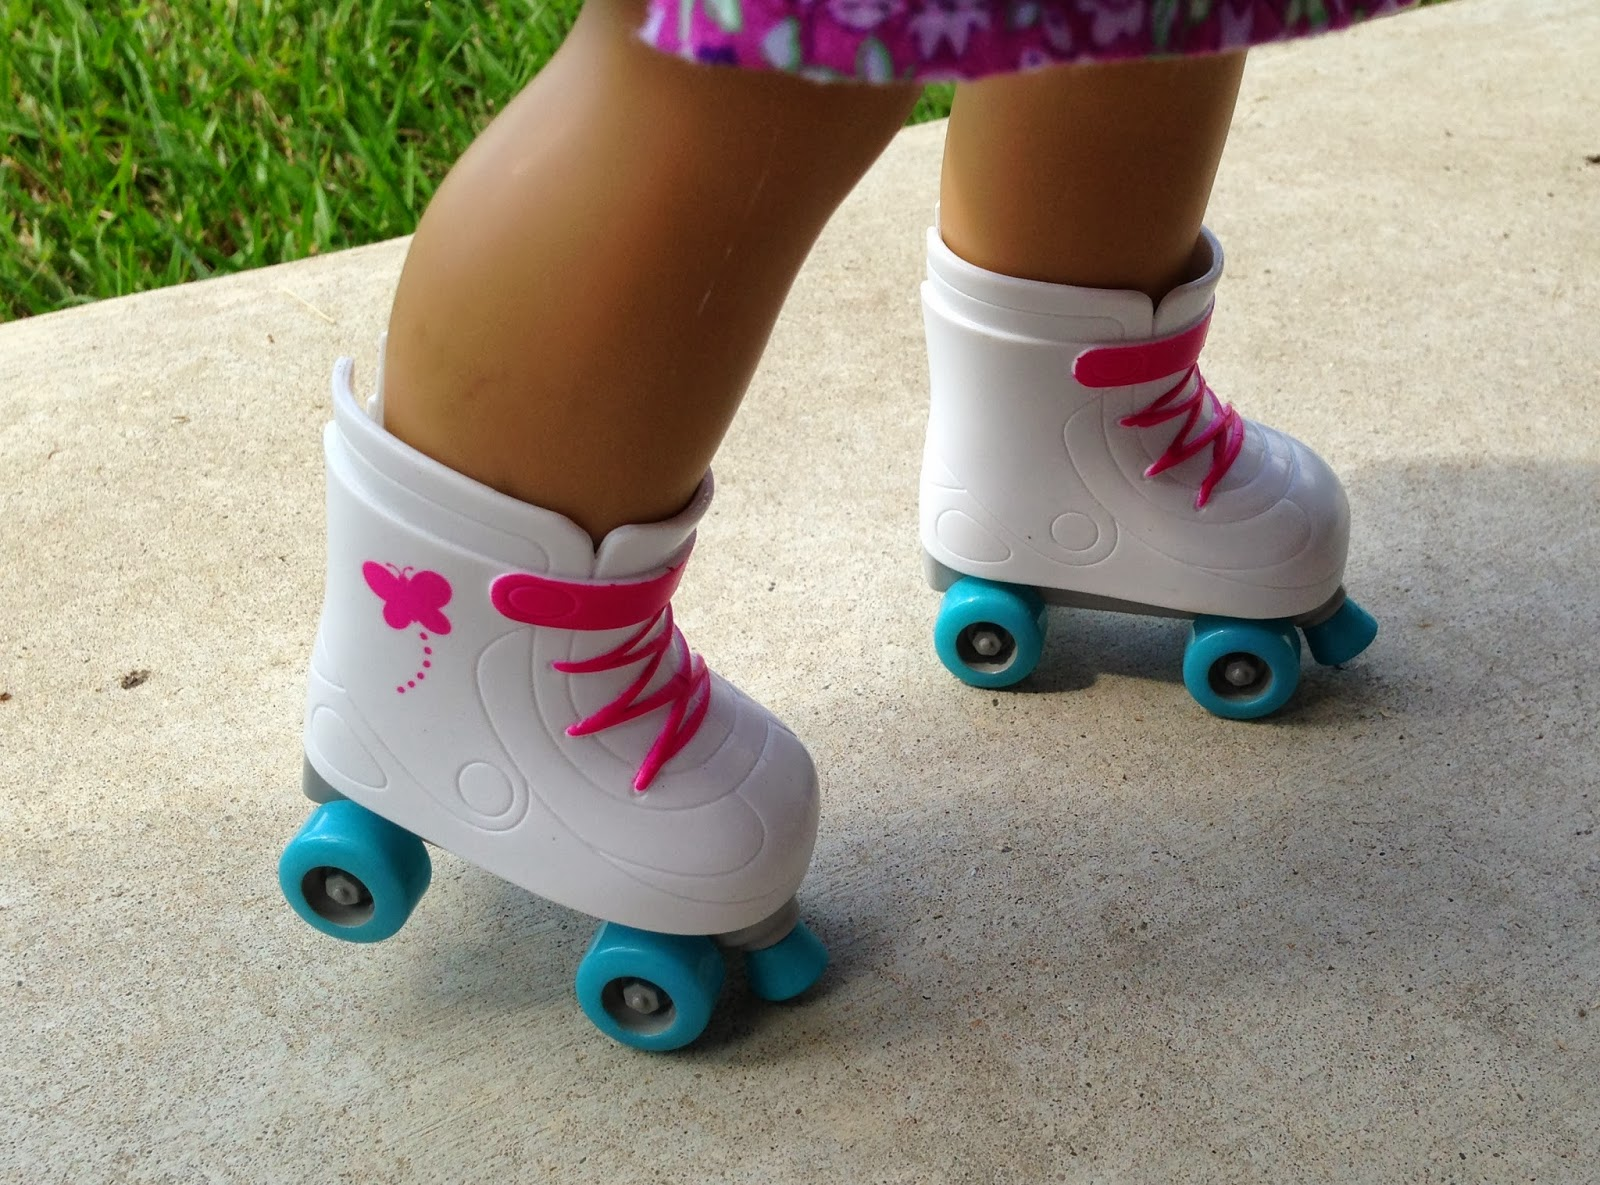 Roller skate shoes walmart - I Thought This My Life As A Hairstylist Doll Was Pretty Adorable She Is A Lovely Asian Doll With Beautiful Teal Green Eyes She Has Shiny Black Hair